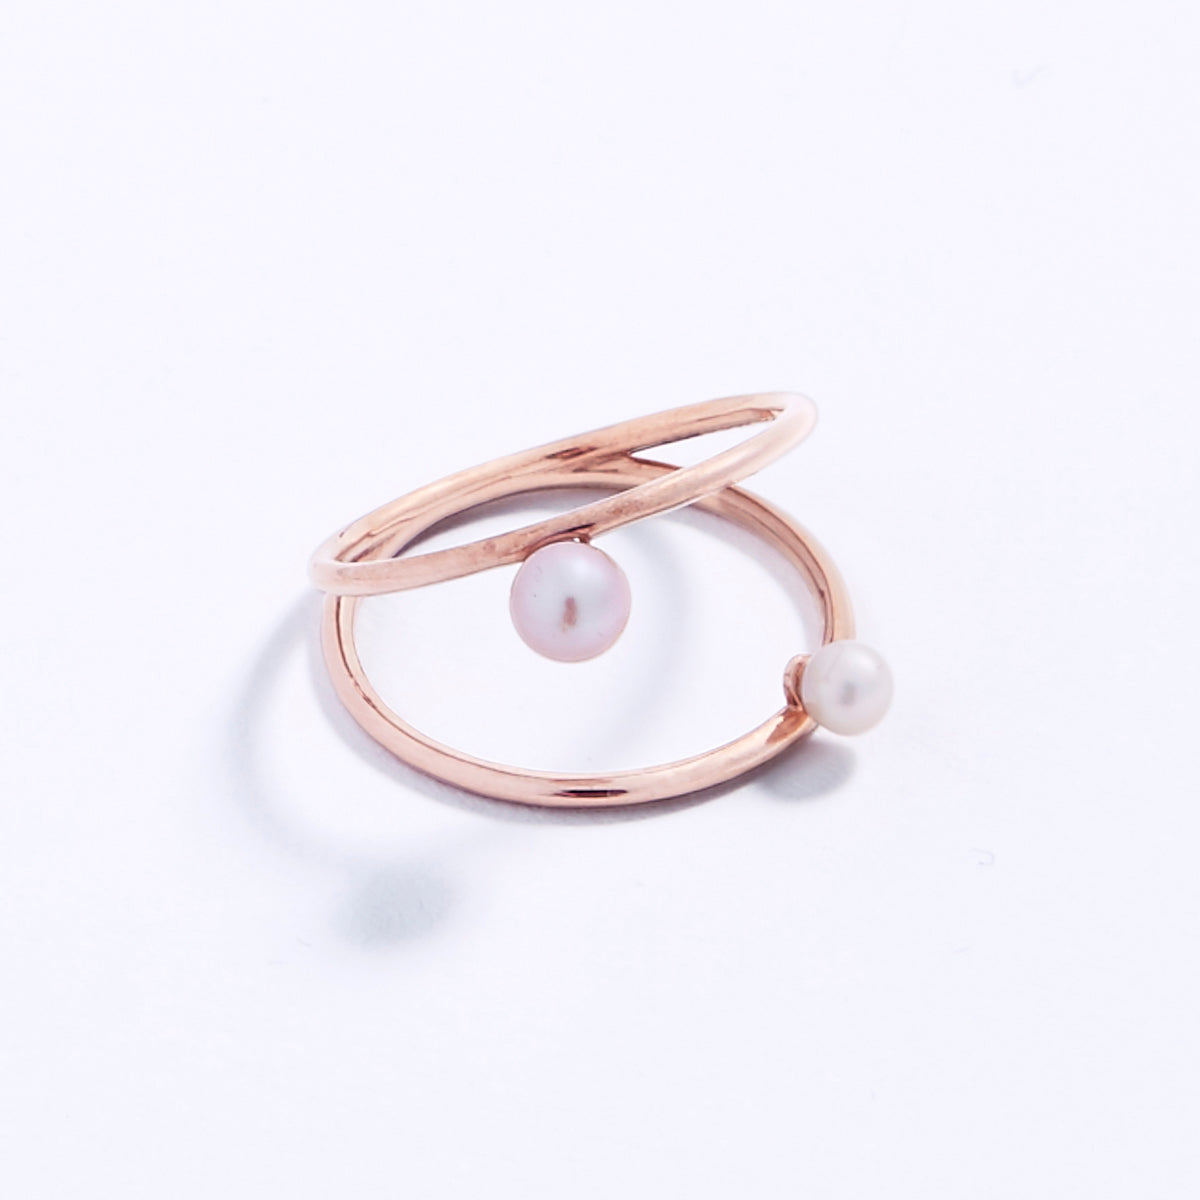 Duo ring- 14k rose gold or yellow gold